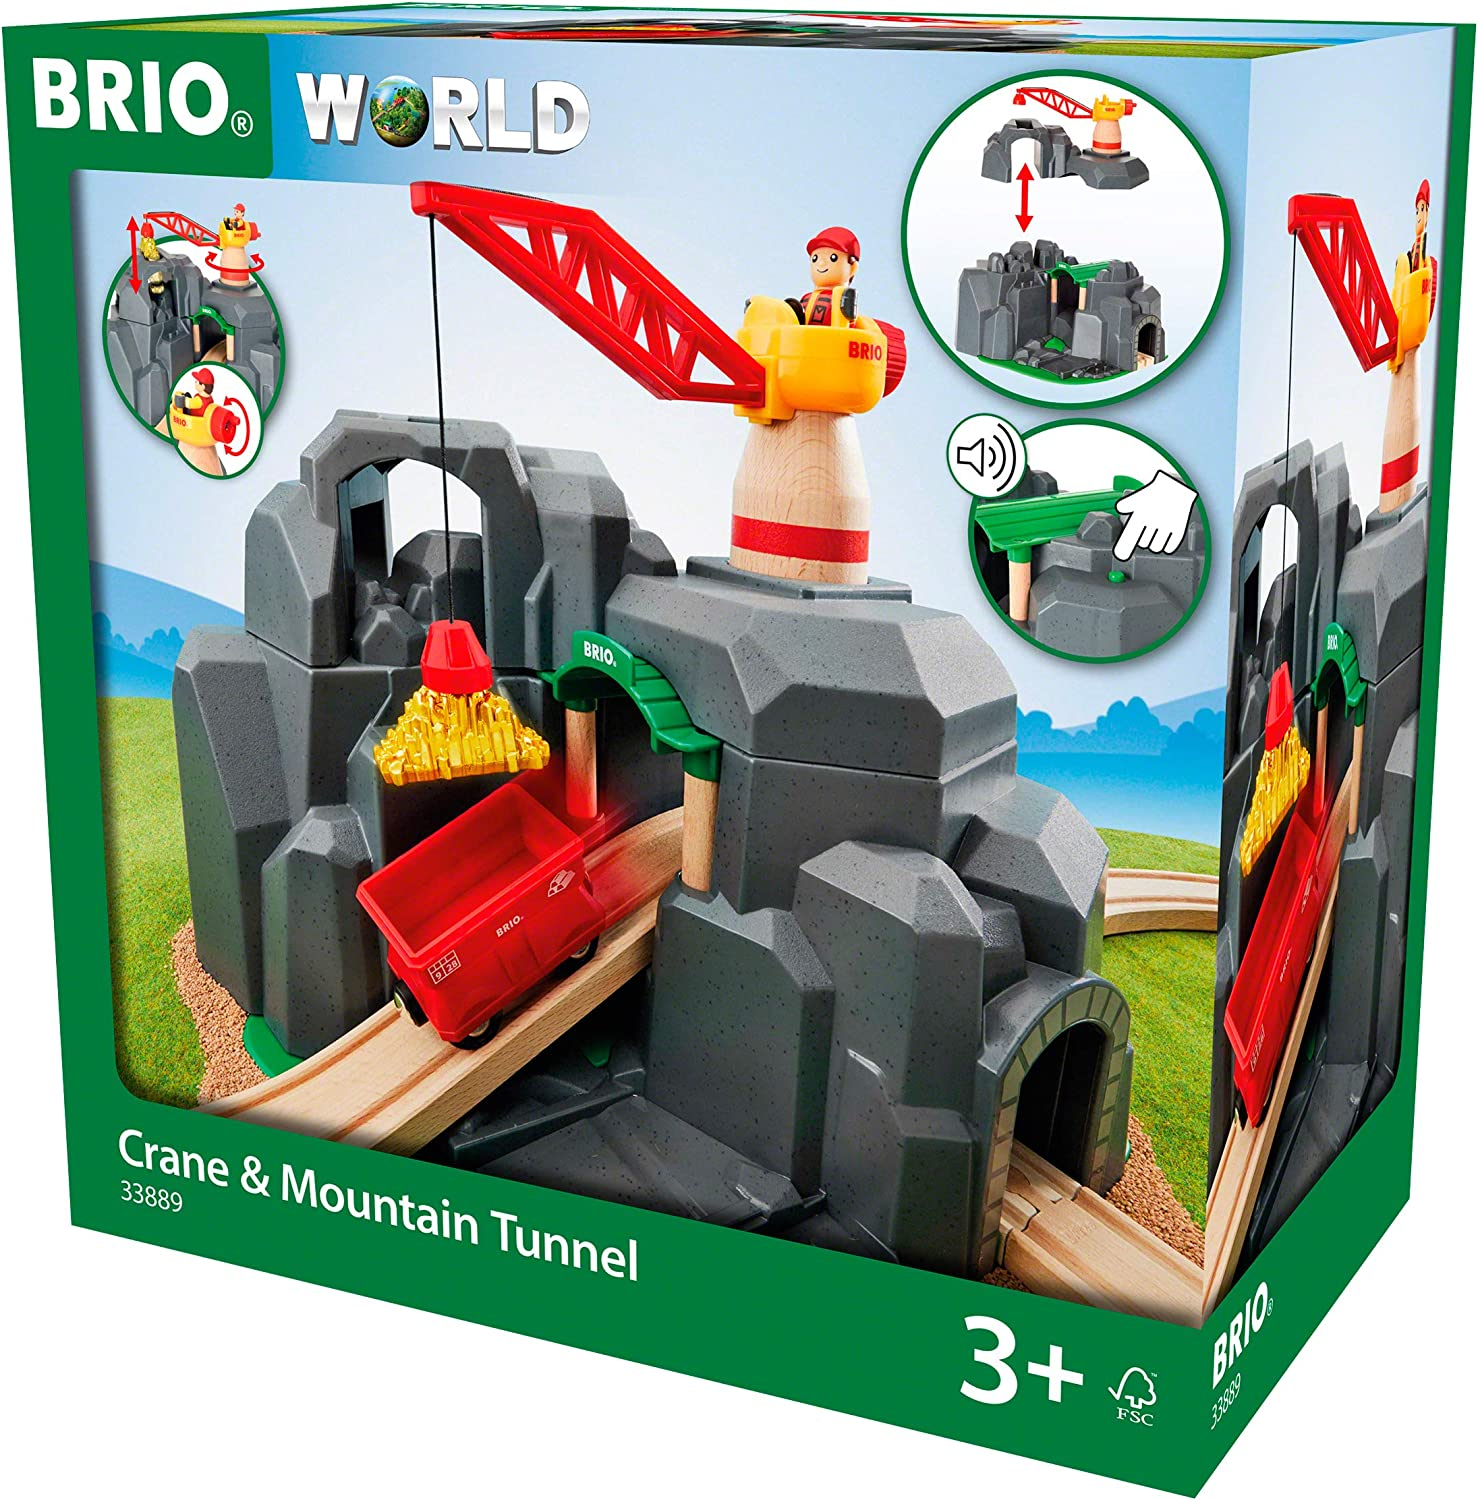 Brio Crane & Mountain Tunnel Wooden Toy Train Set for Kids Ages 3 Years and Up  Made with European Beech Wood and Works with All Wooden Railway Sets